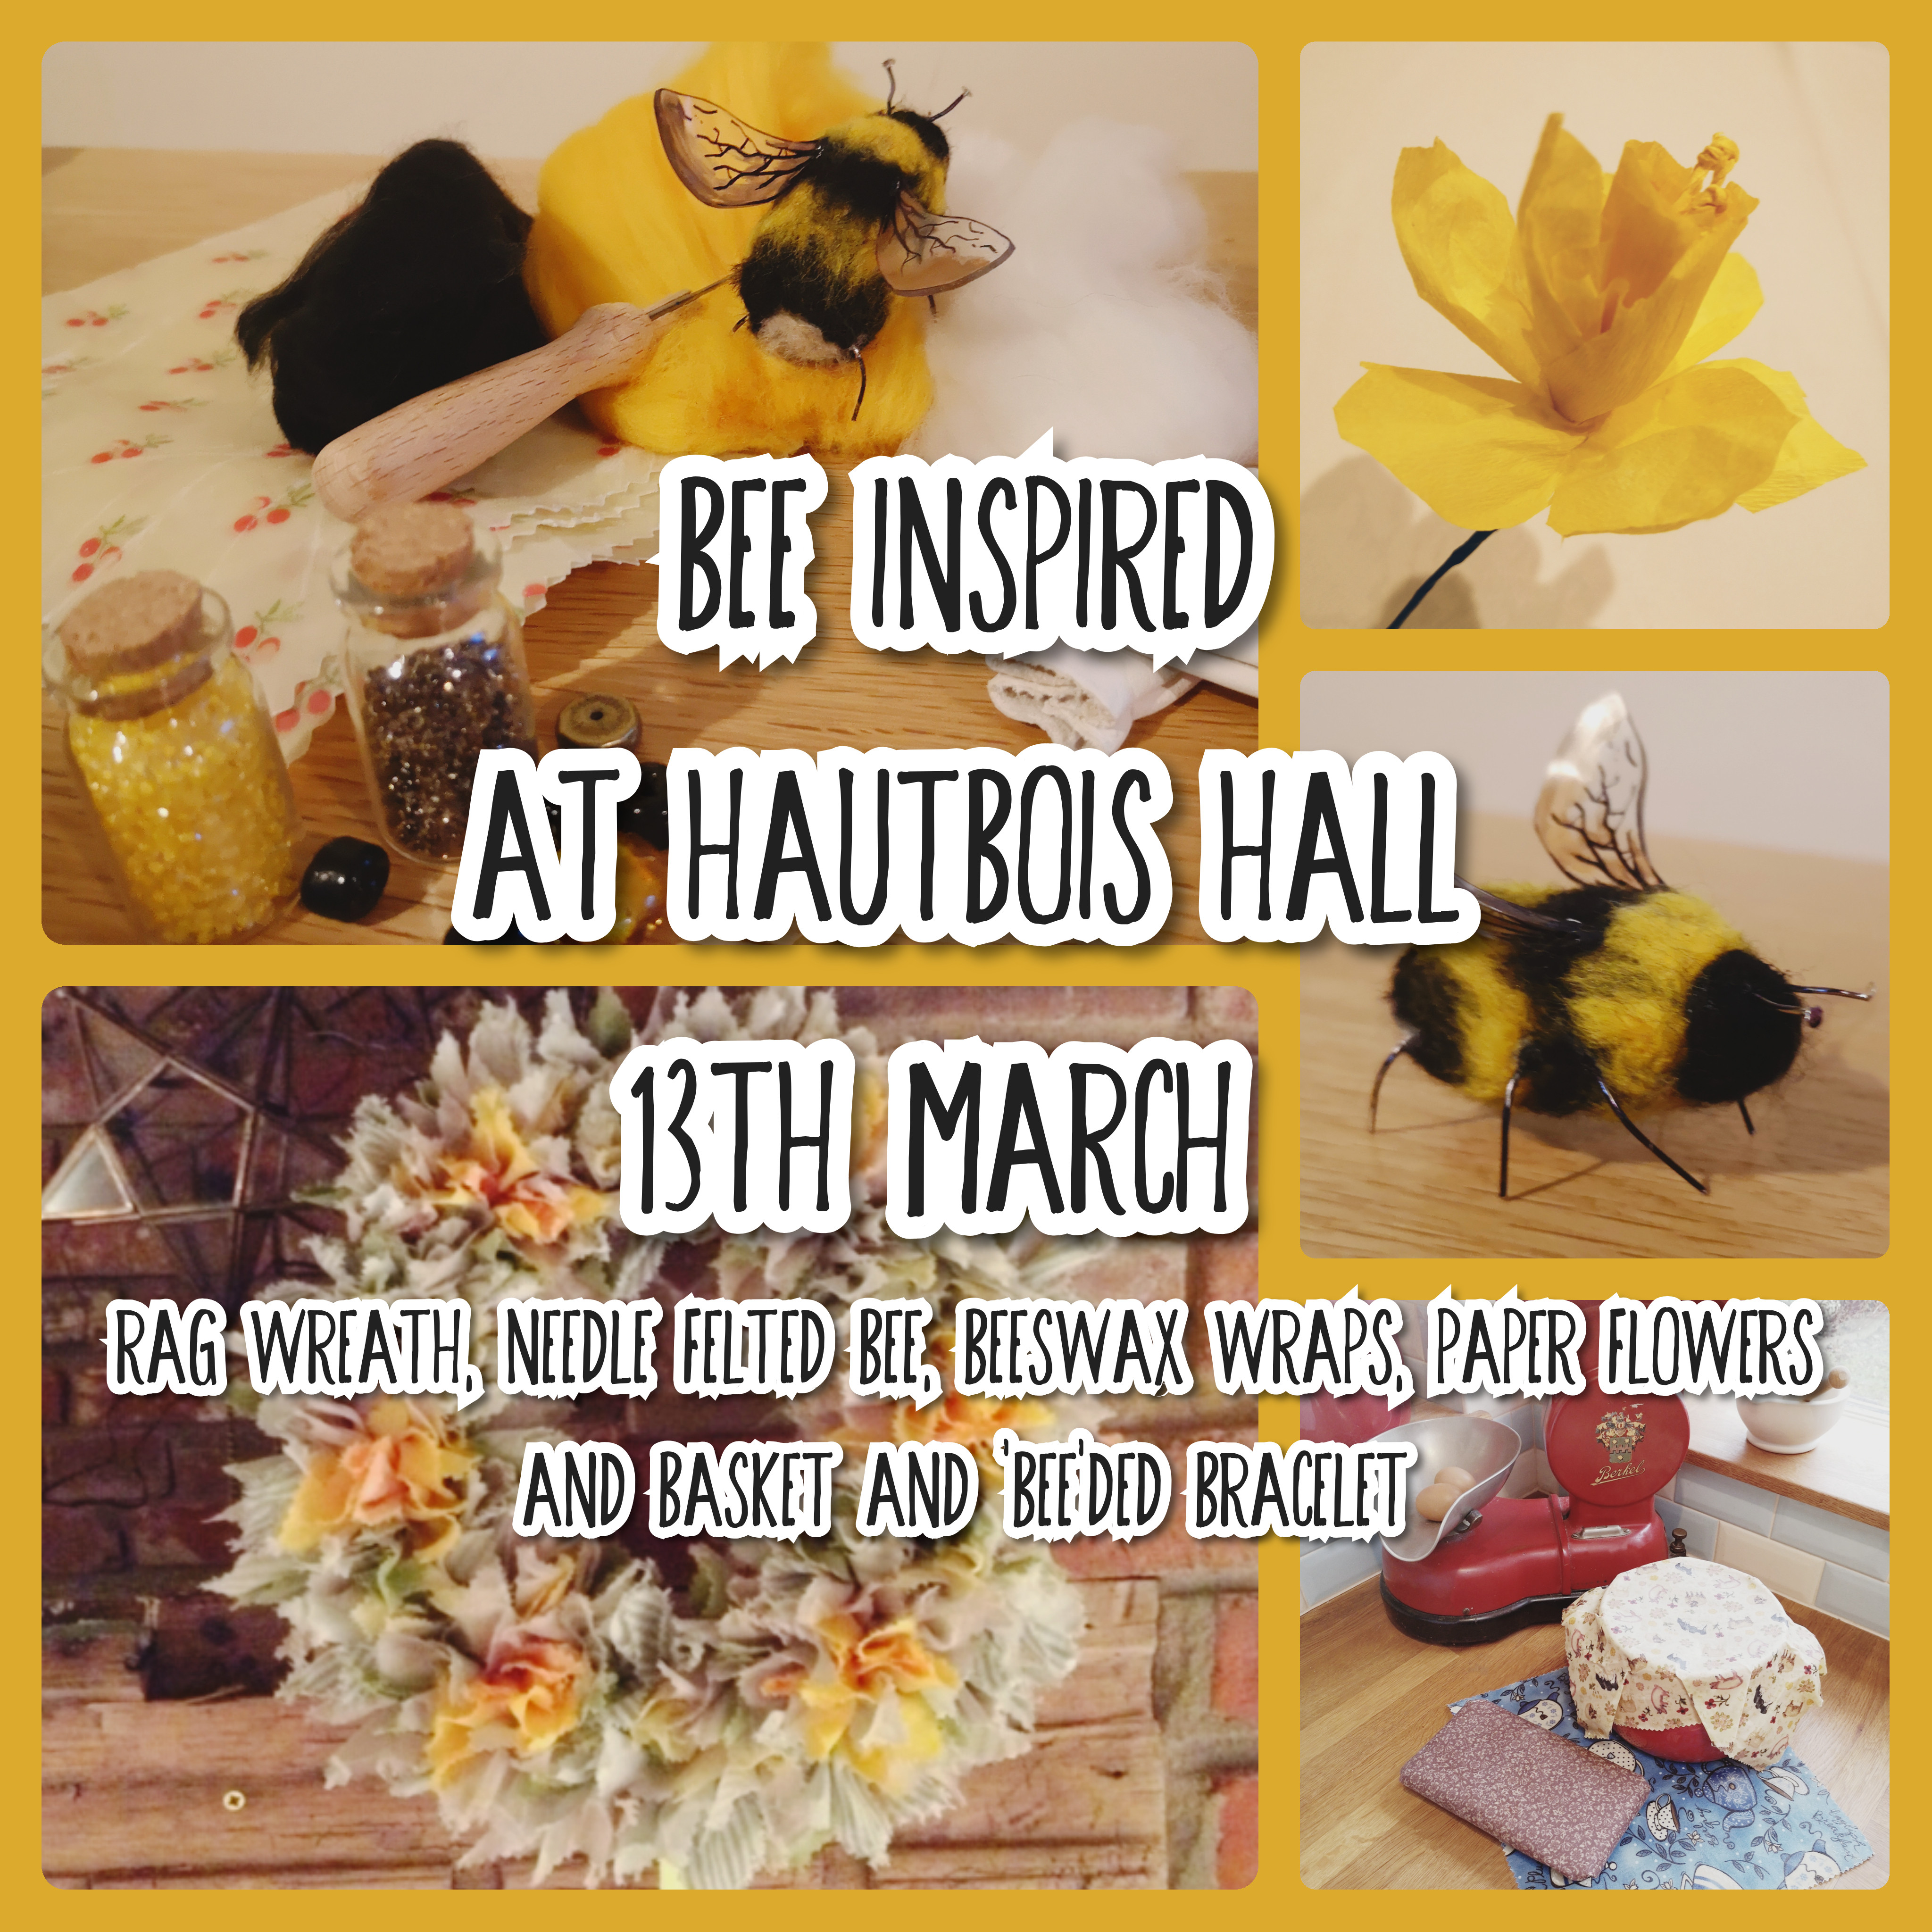 Bee Inspired - One day of spring crafts